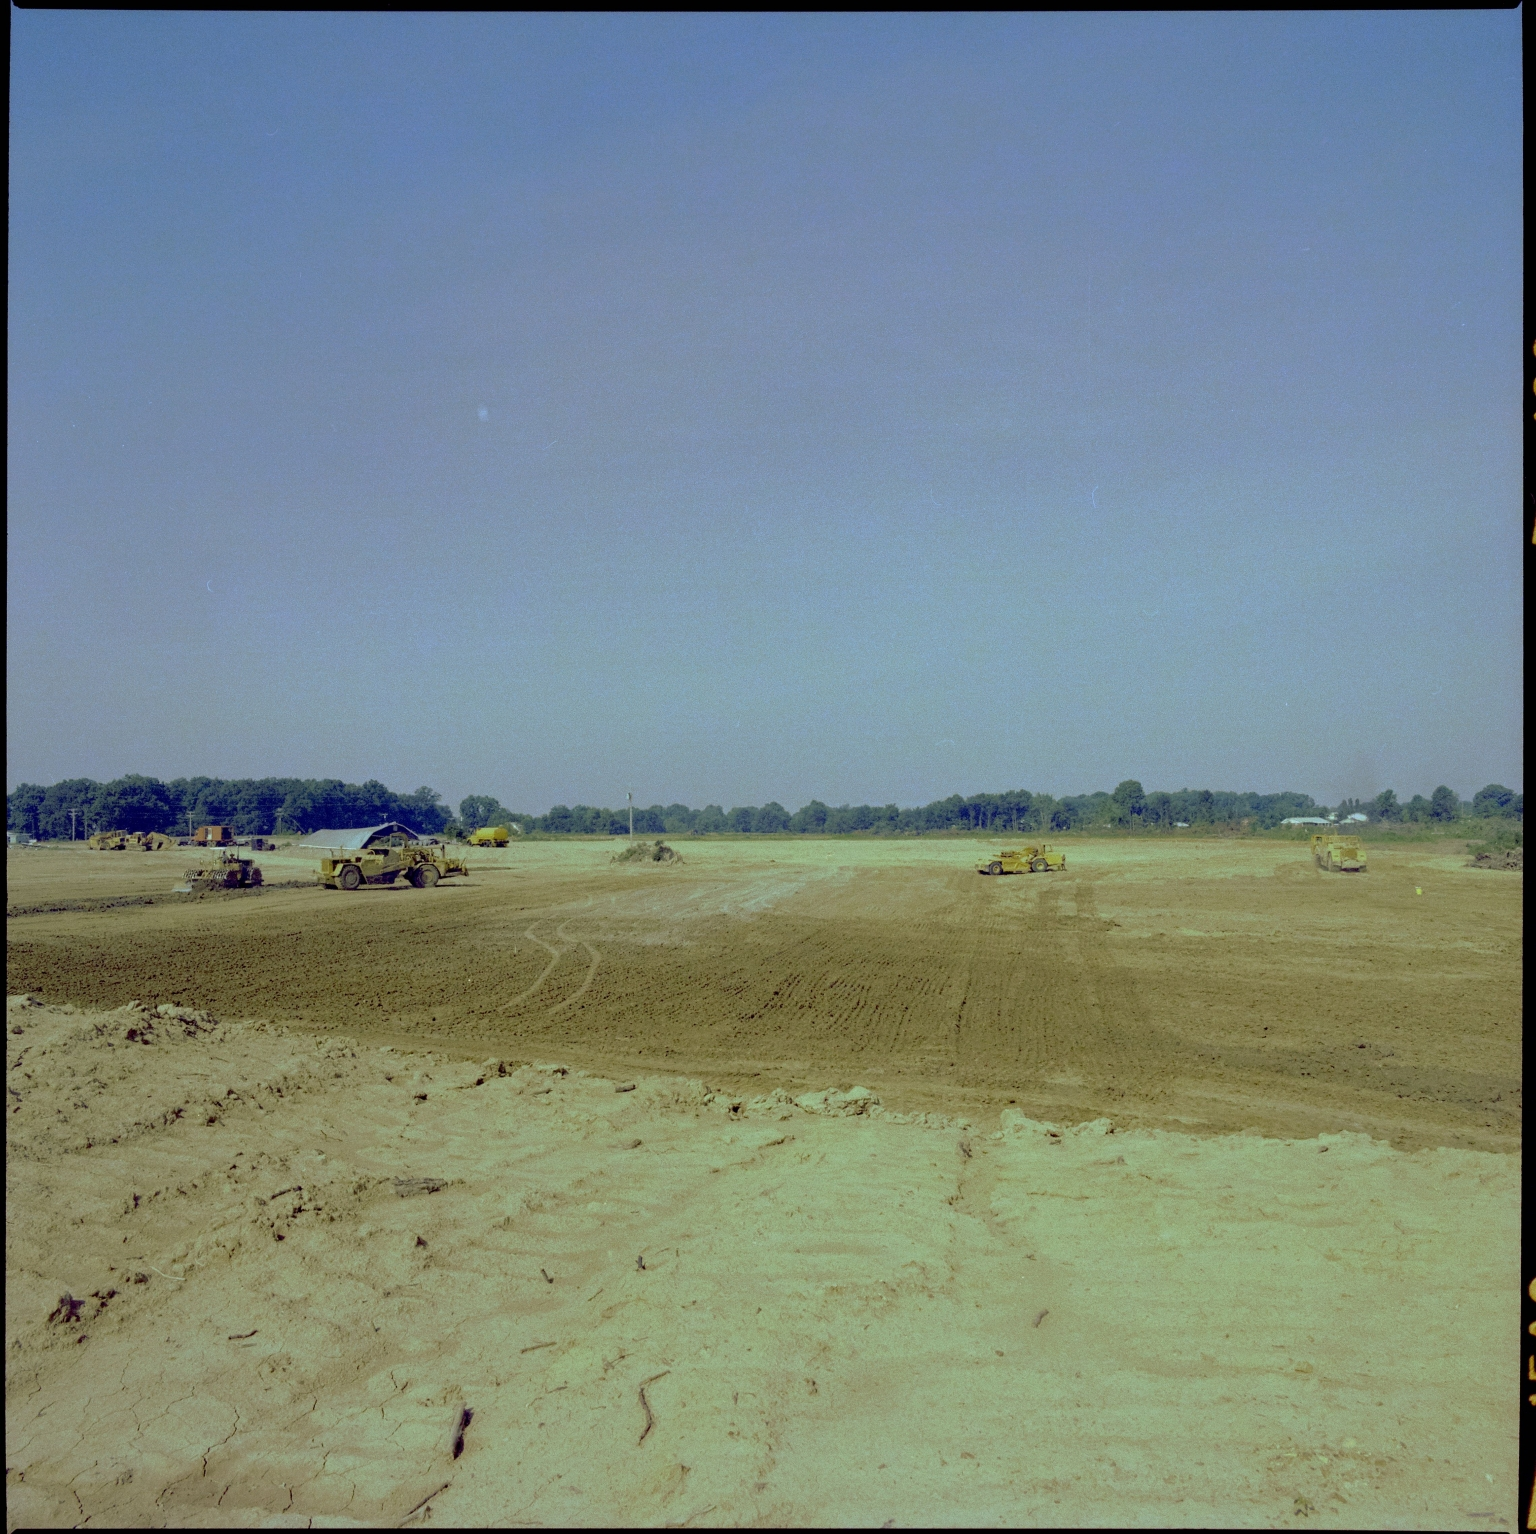 Construction of Kentucky Oaks Mall